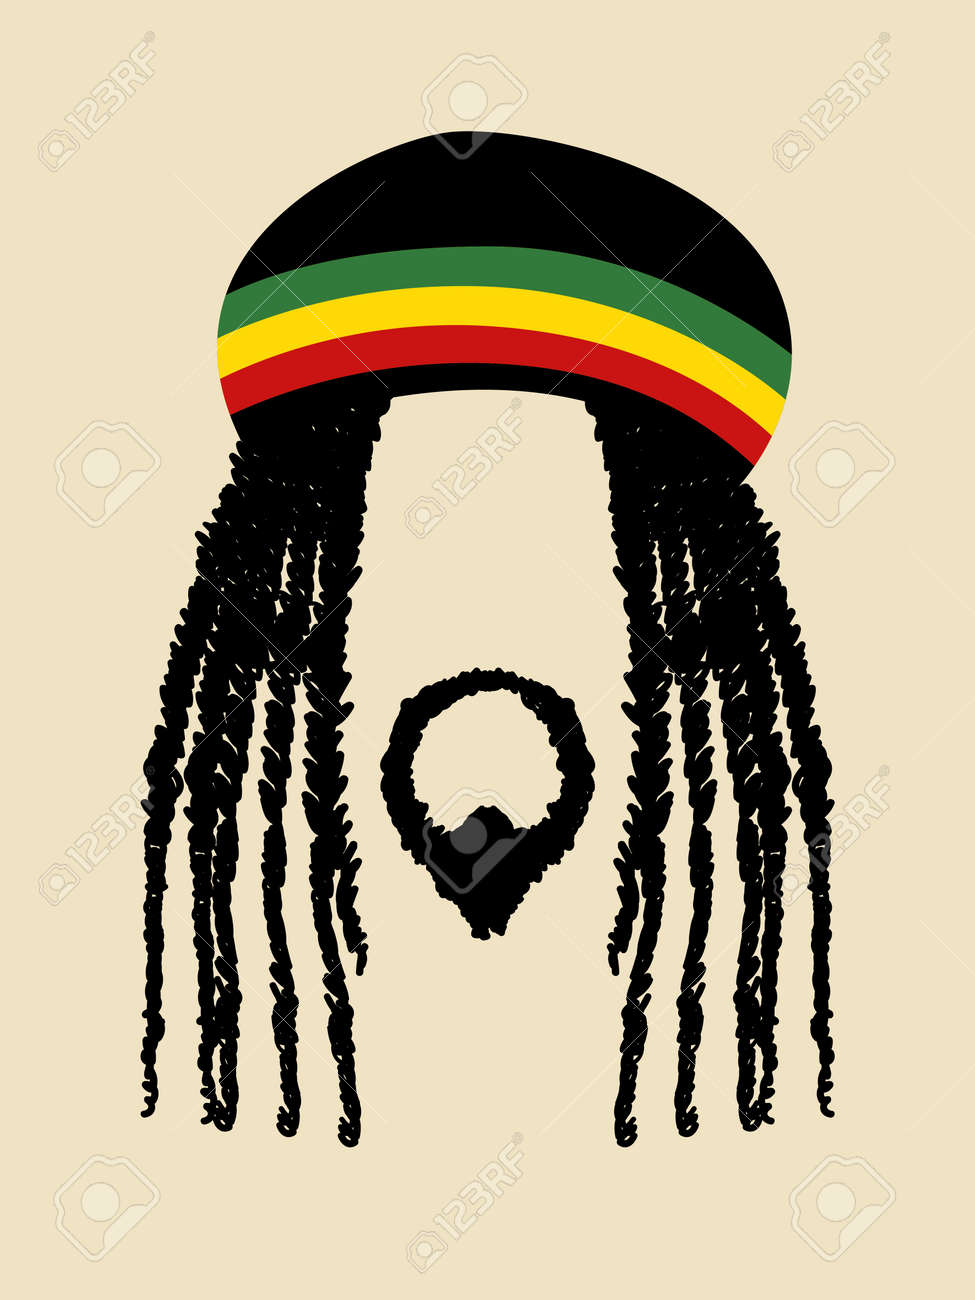 face symbol of a man with dreadlocks hairstyle rasta rastafarian